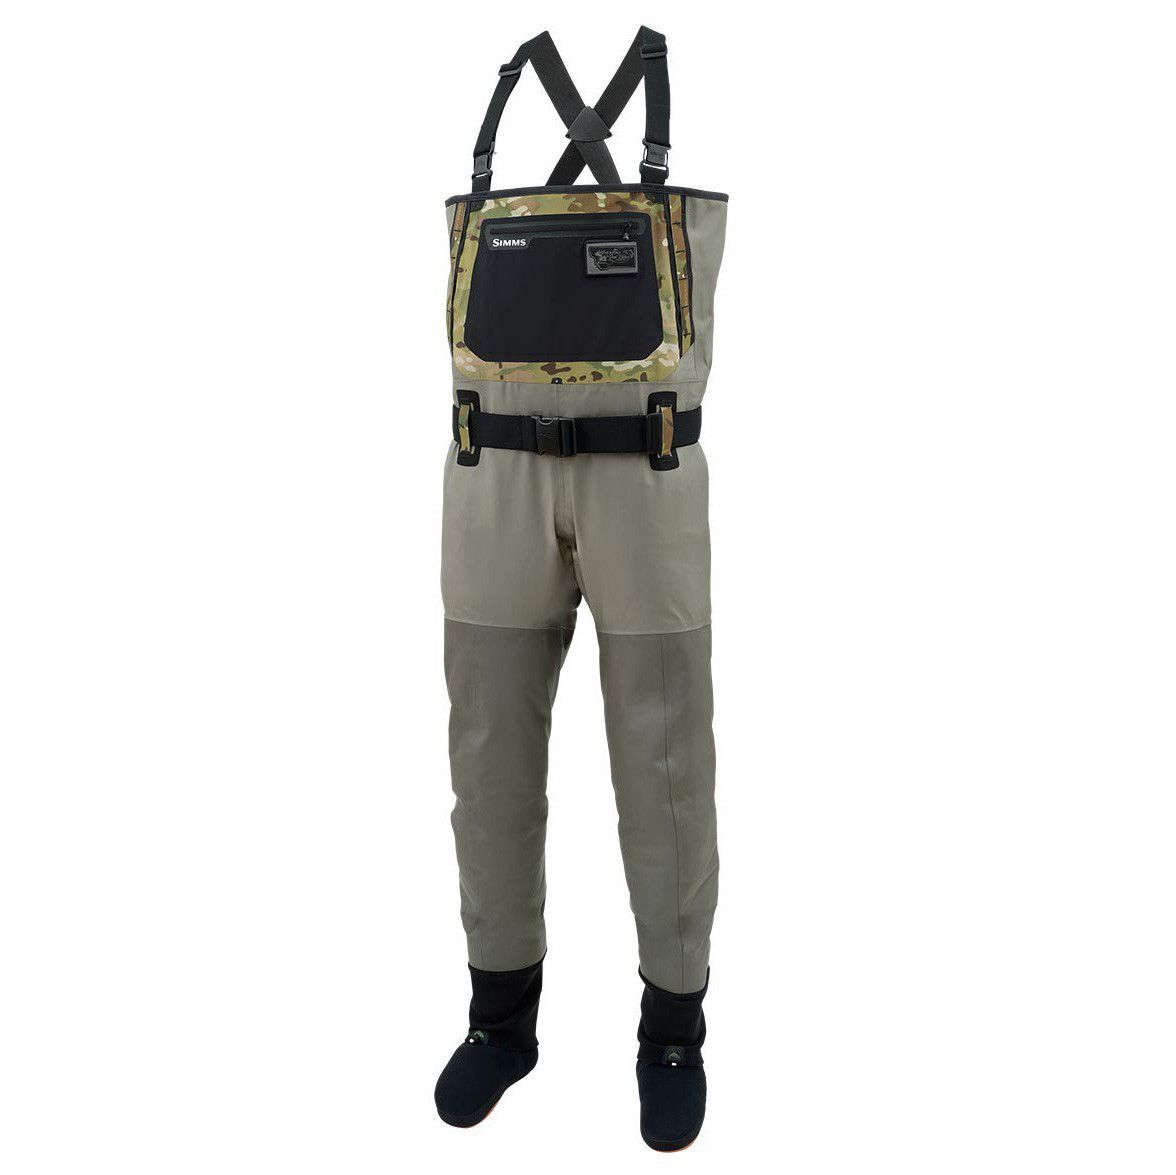 Simms G3 Guide Wader - WQW Limited Edition